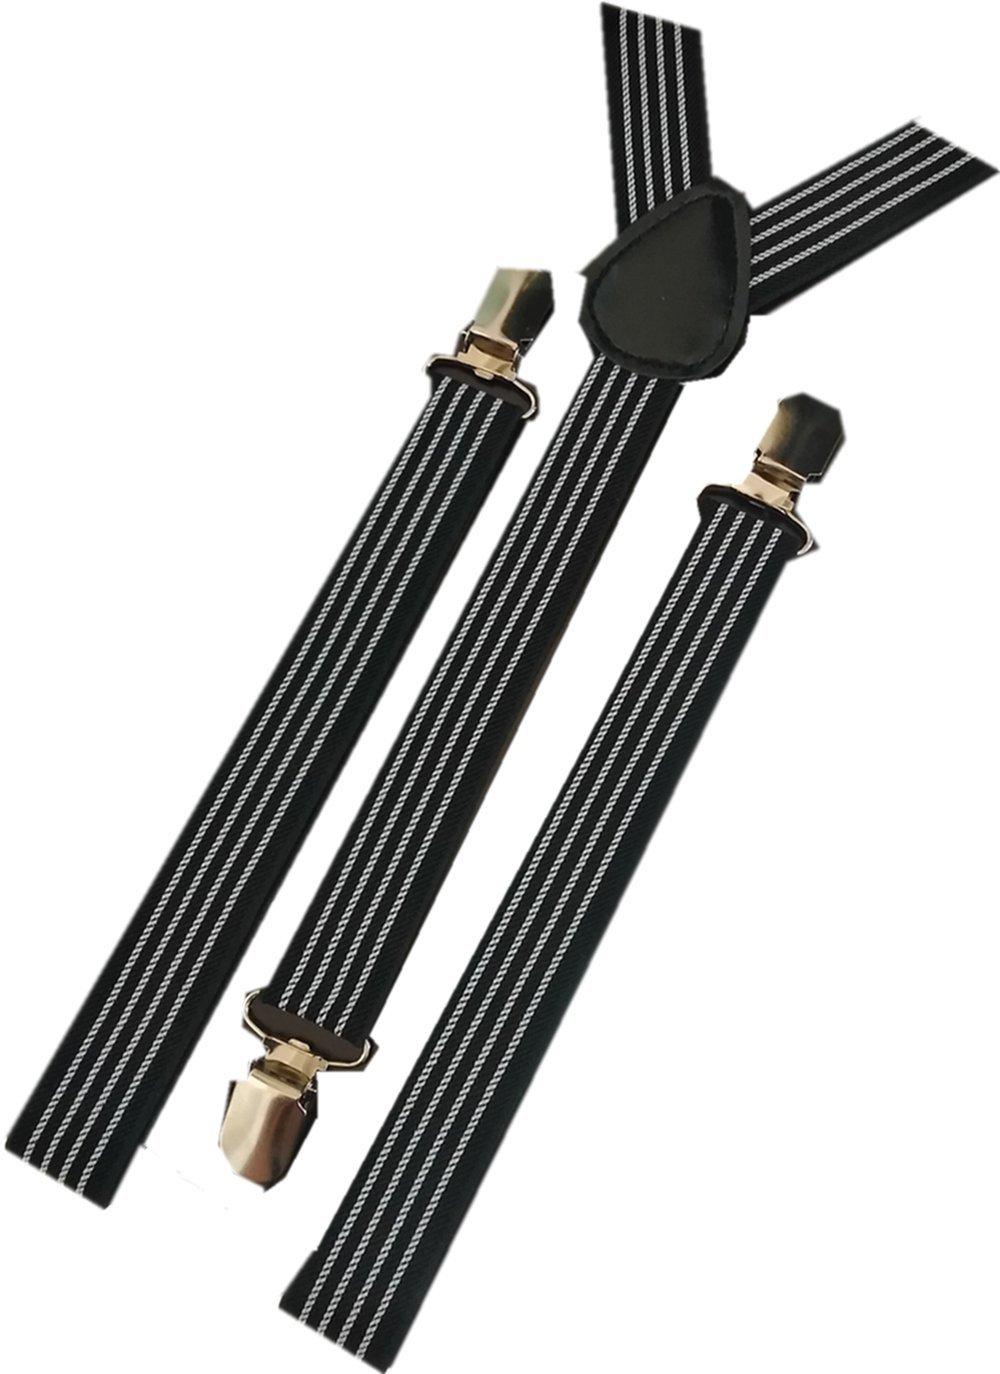 YUNEE Gentlemen Suspenders Solid Color Metal Clips Adjustable Elastic Shoulder Straps (a)